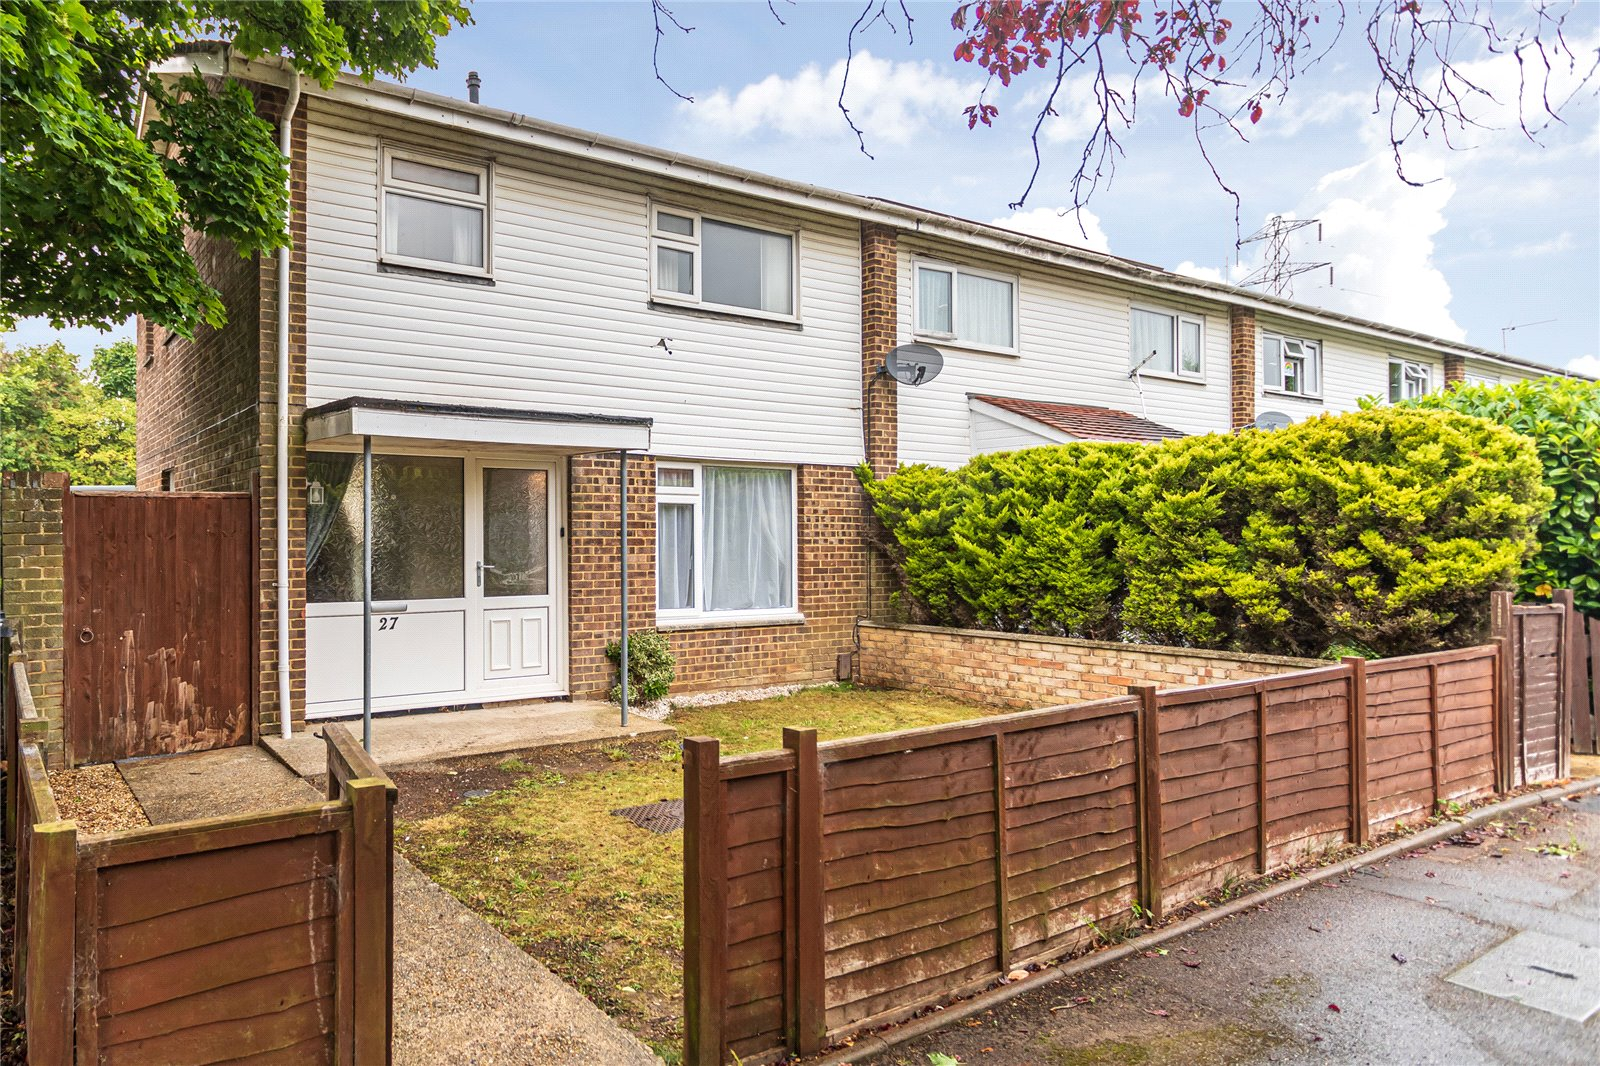 3 bed house for sale in King John Avenue, Bournemouth, BH11